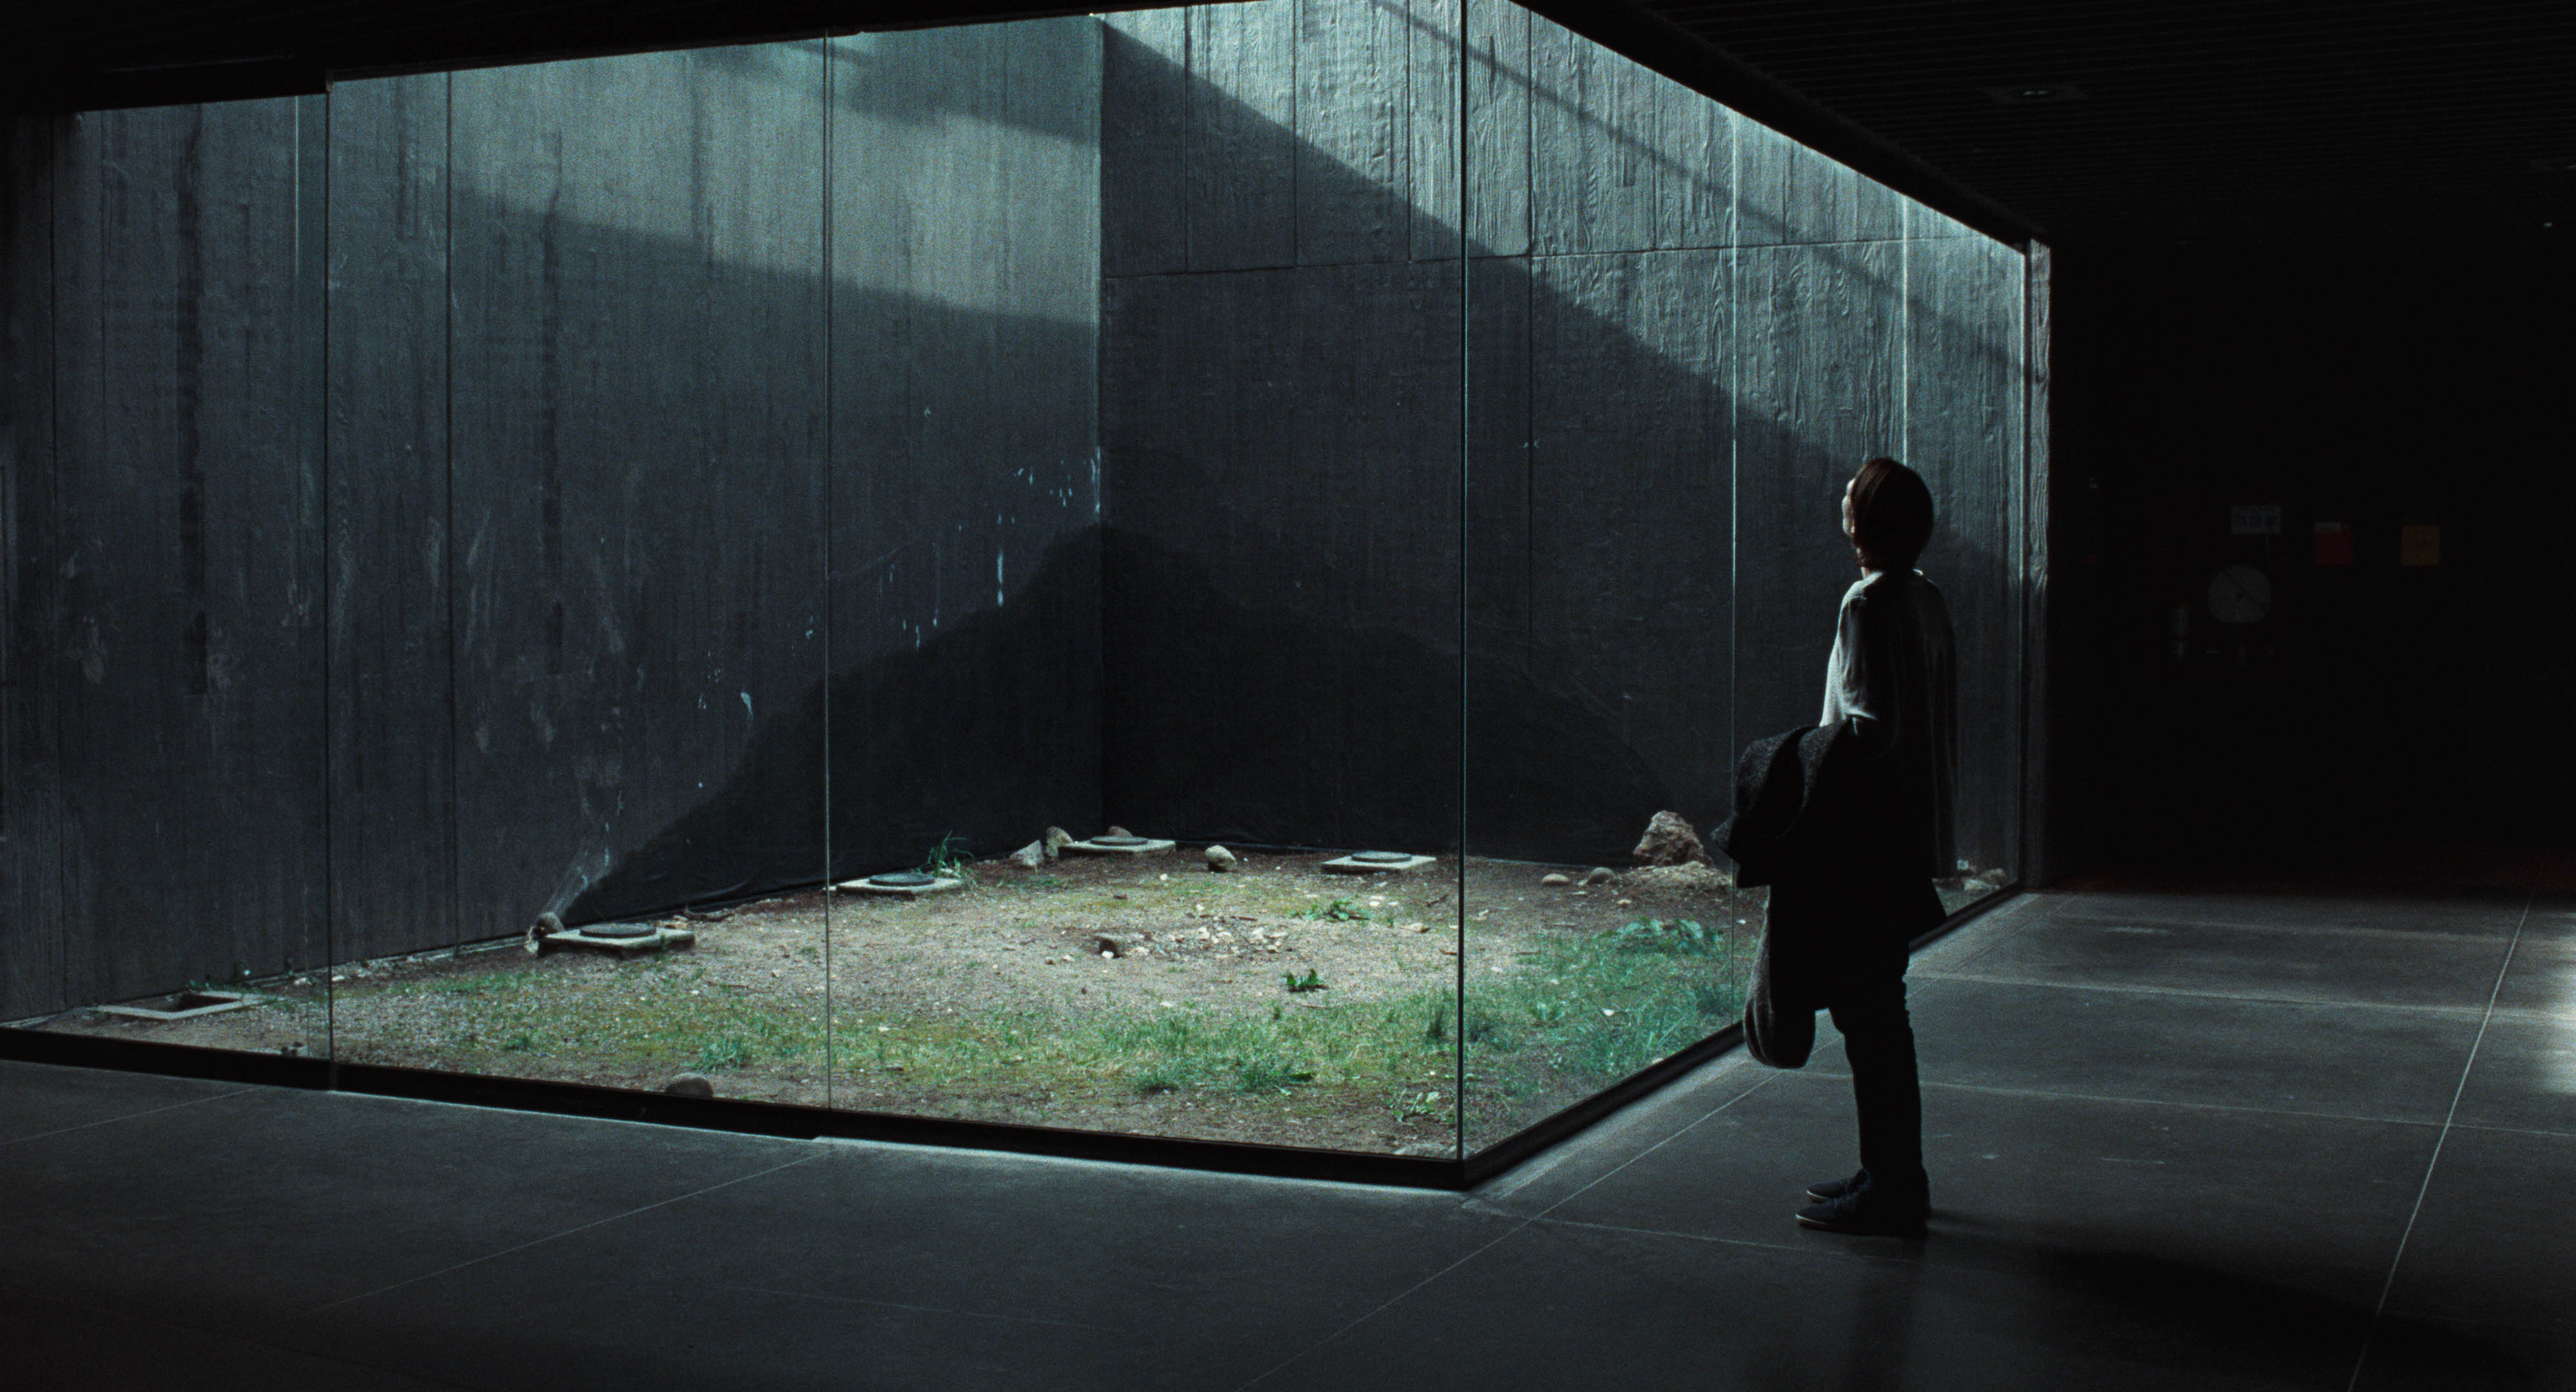 A woman in a dark room looks through a cubed glass window leading to an enclosed piece of land while holding a black piece of clothing.